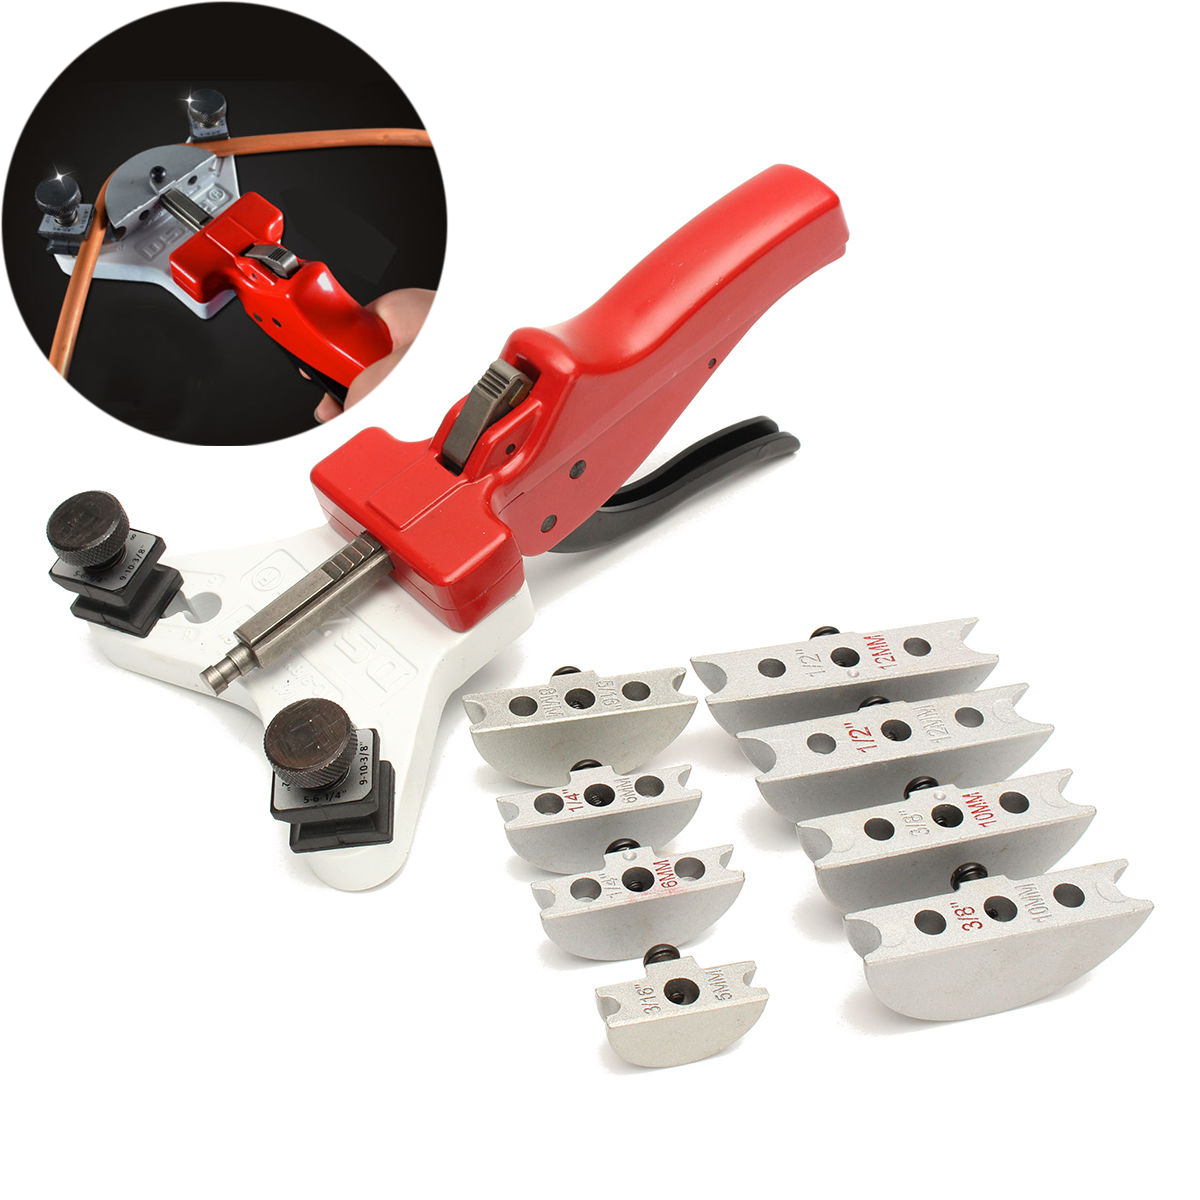 1 Set Heavy Duty Tube Bender Manual Steel Pipe Copper Cutter Machine Tool Set For 5/6/8/10/12mm 7 42mm heavy duty tube cutter ct 312